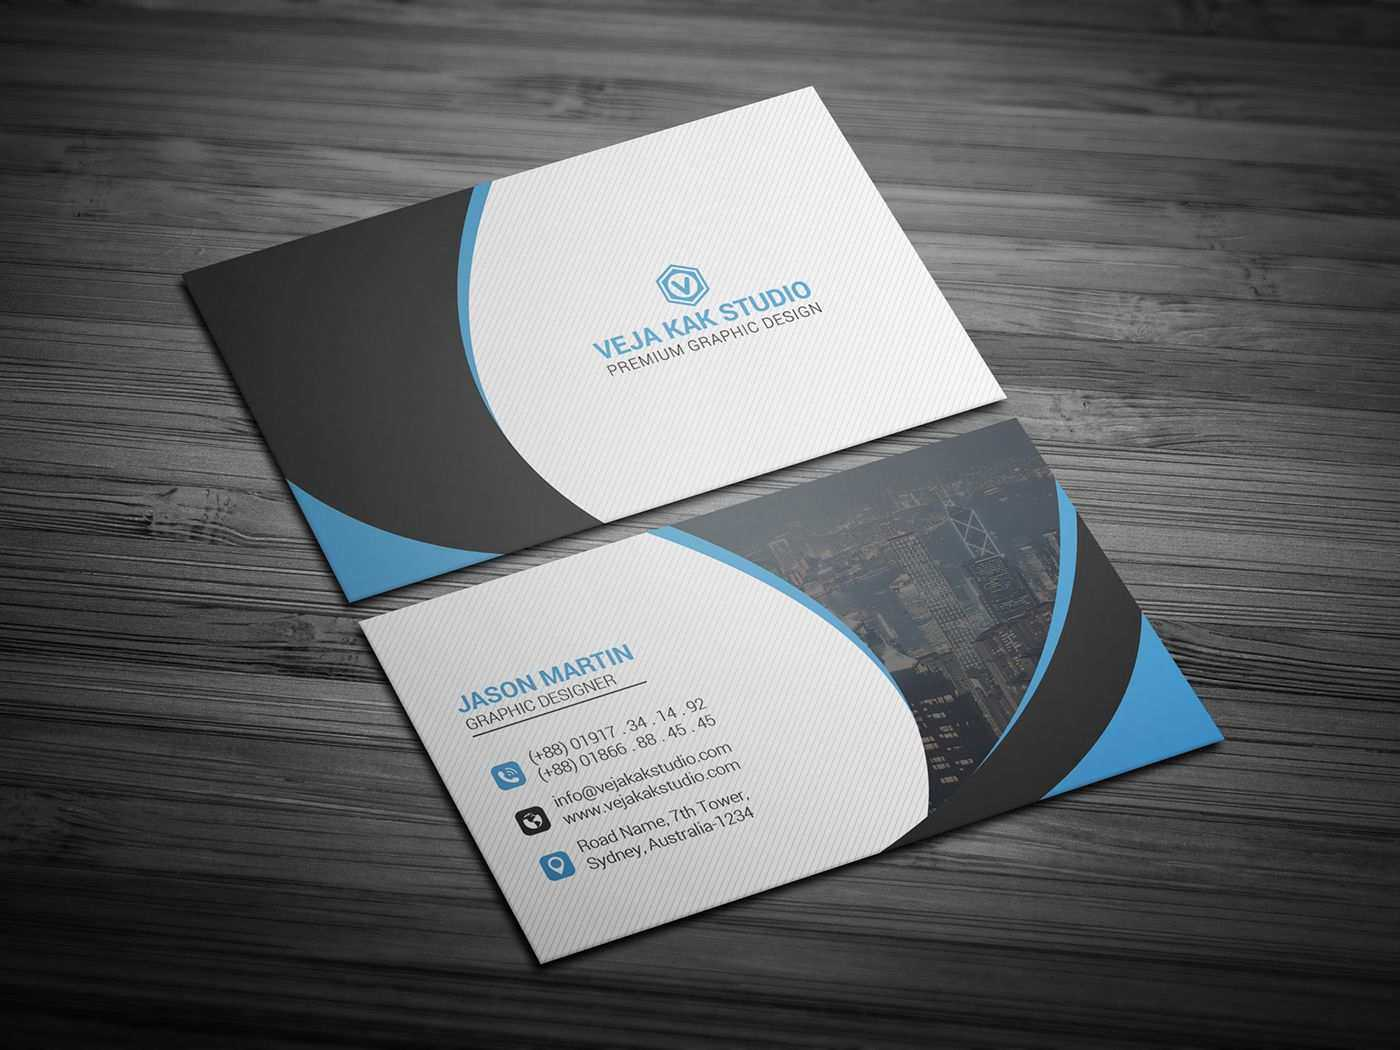 Gartner Business Card Template 61797 - Cards Design Templates With Gartner Business Cards Template